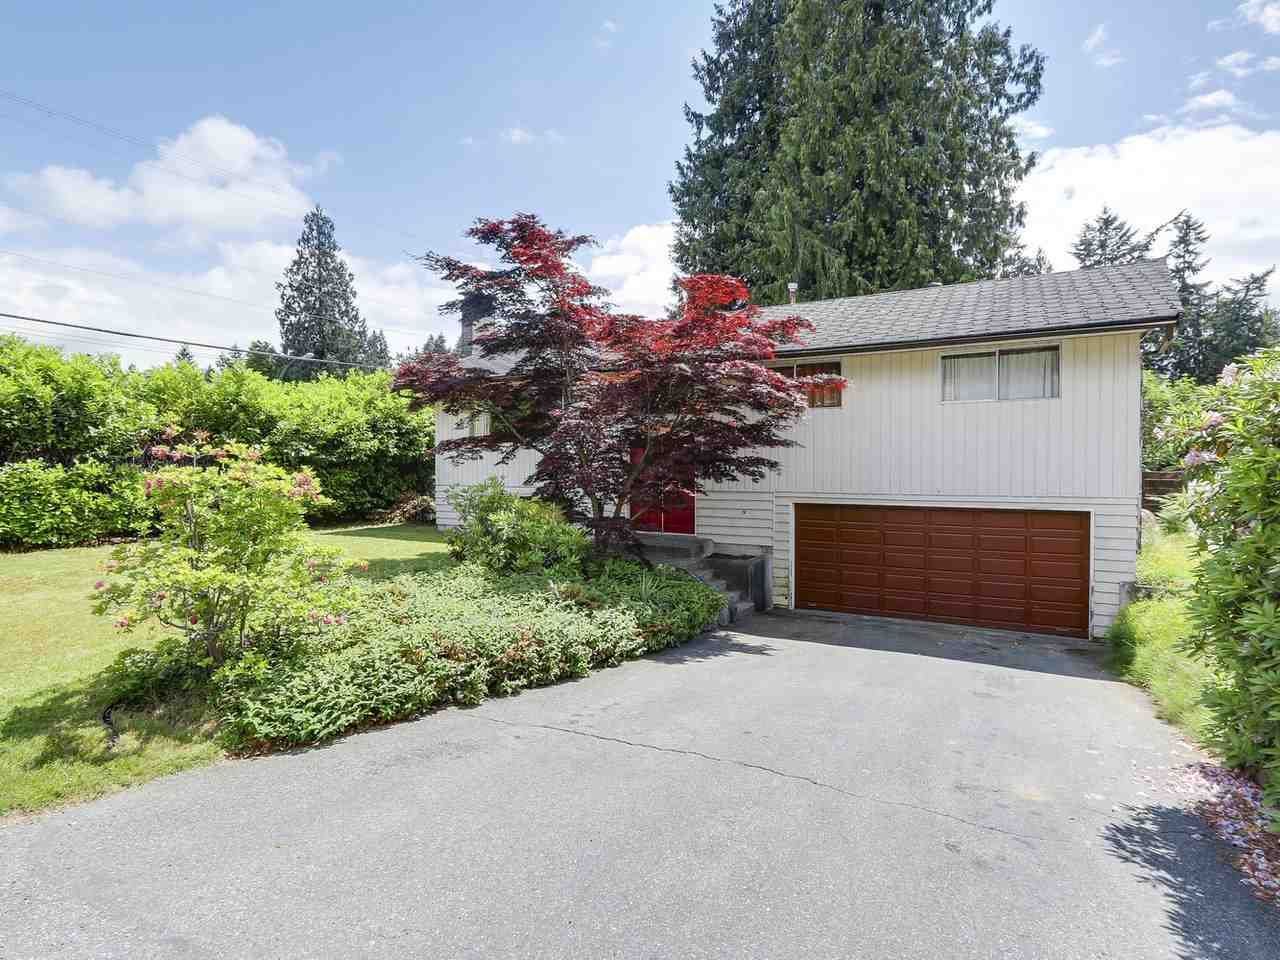 Main Photo: 2498 LATIMER Avenue in Coquitlam: Central Coquitlam House for sale : MLS®# R2177427